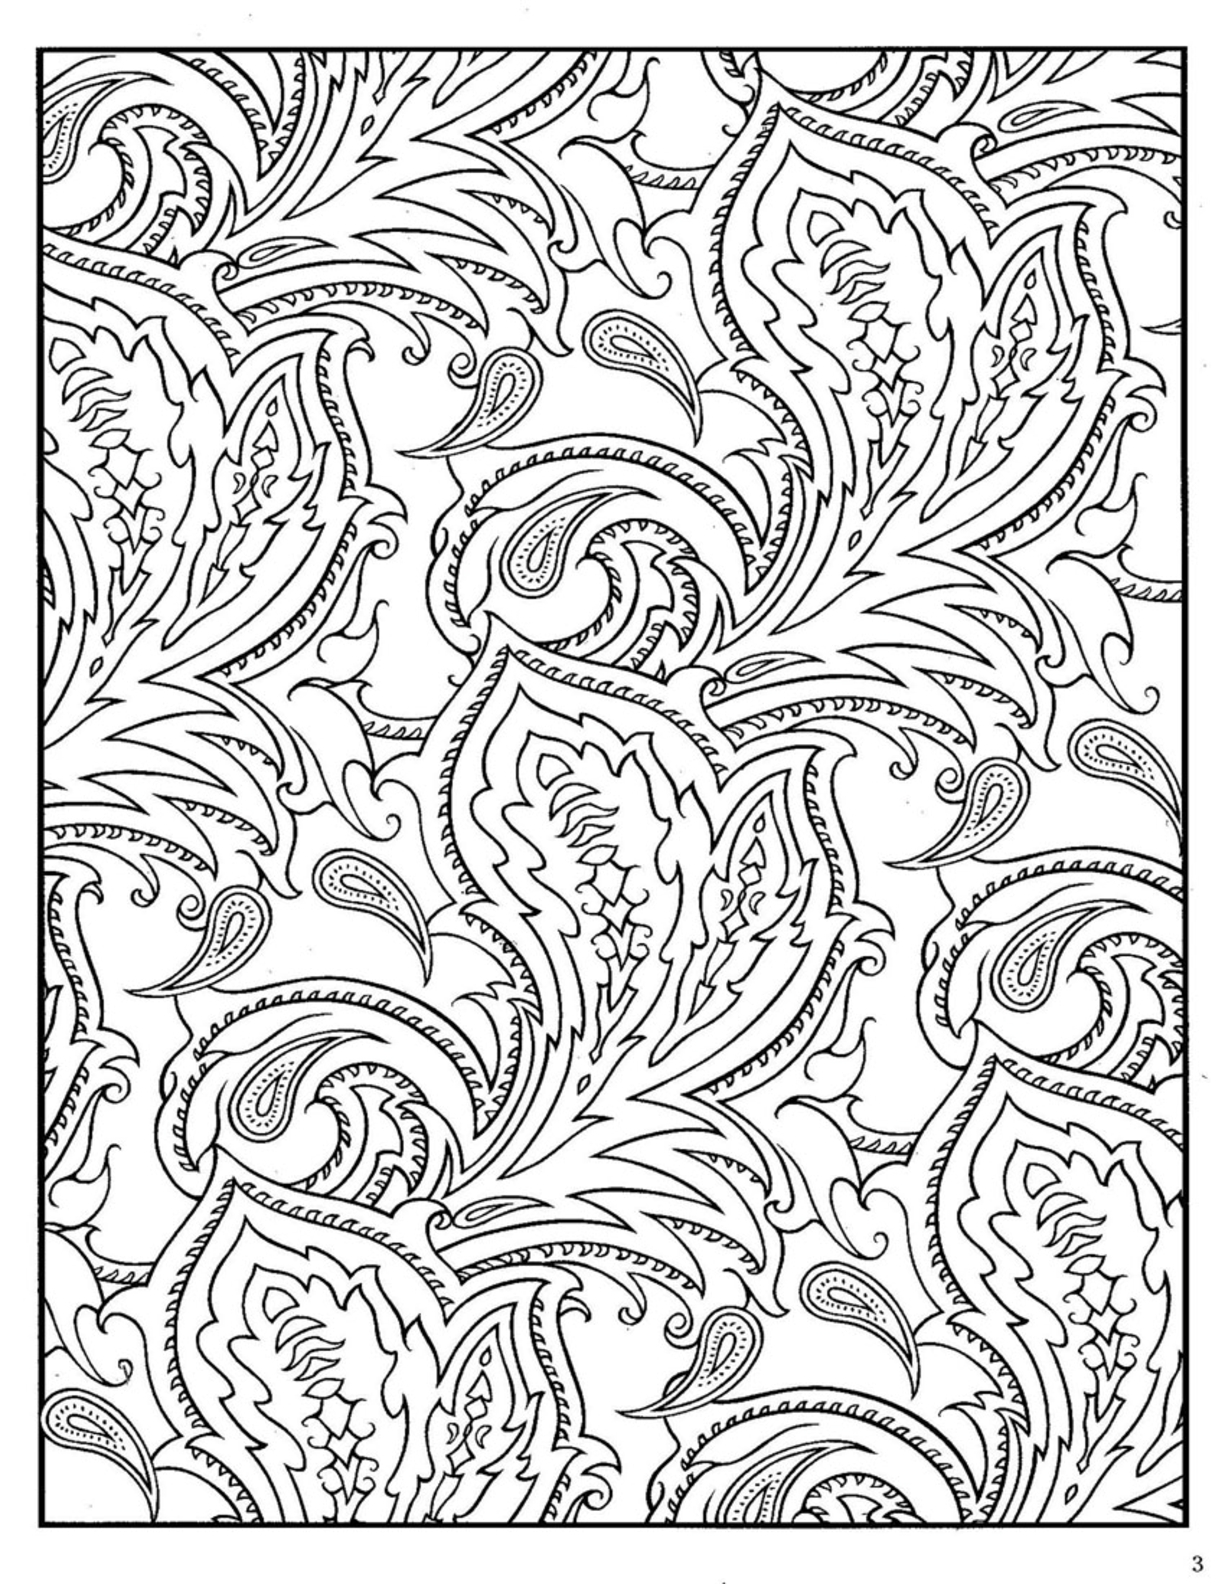 patterned designs coloring pages - photo#5